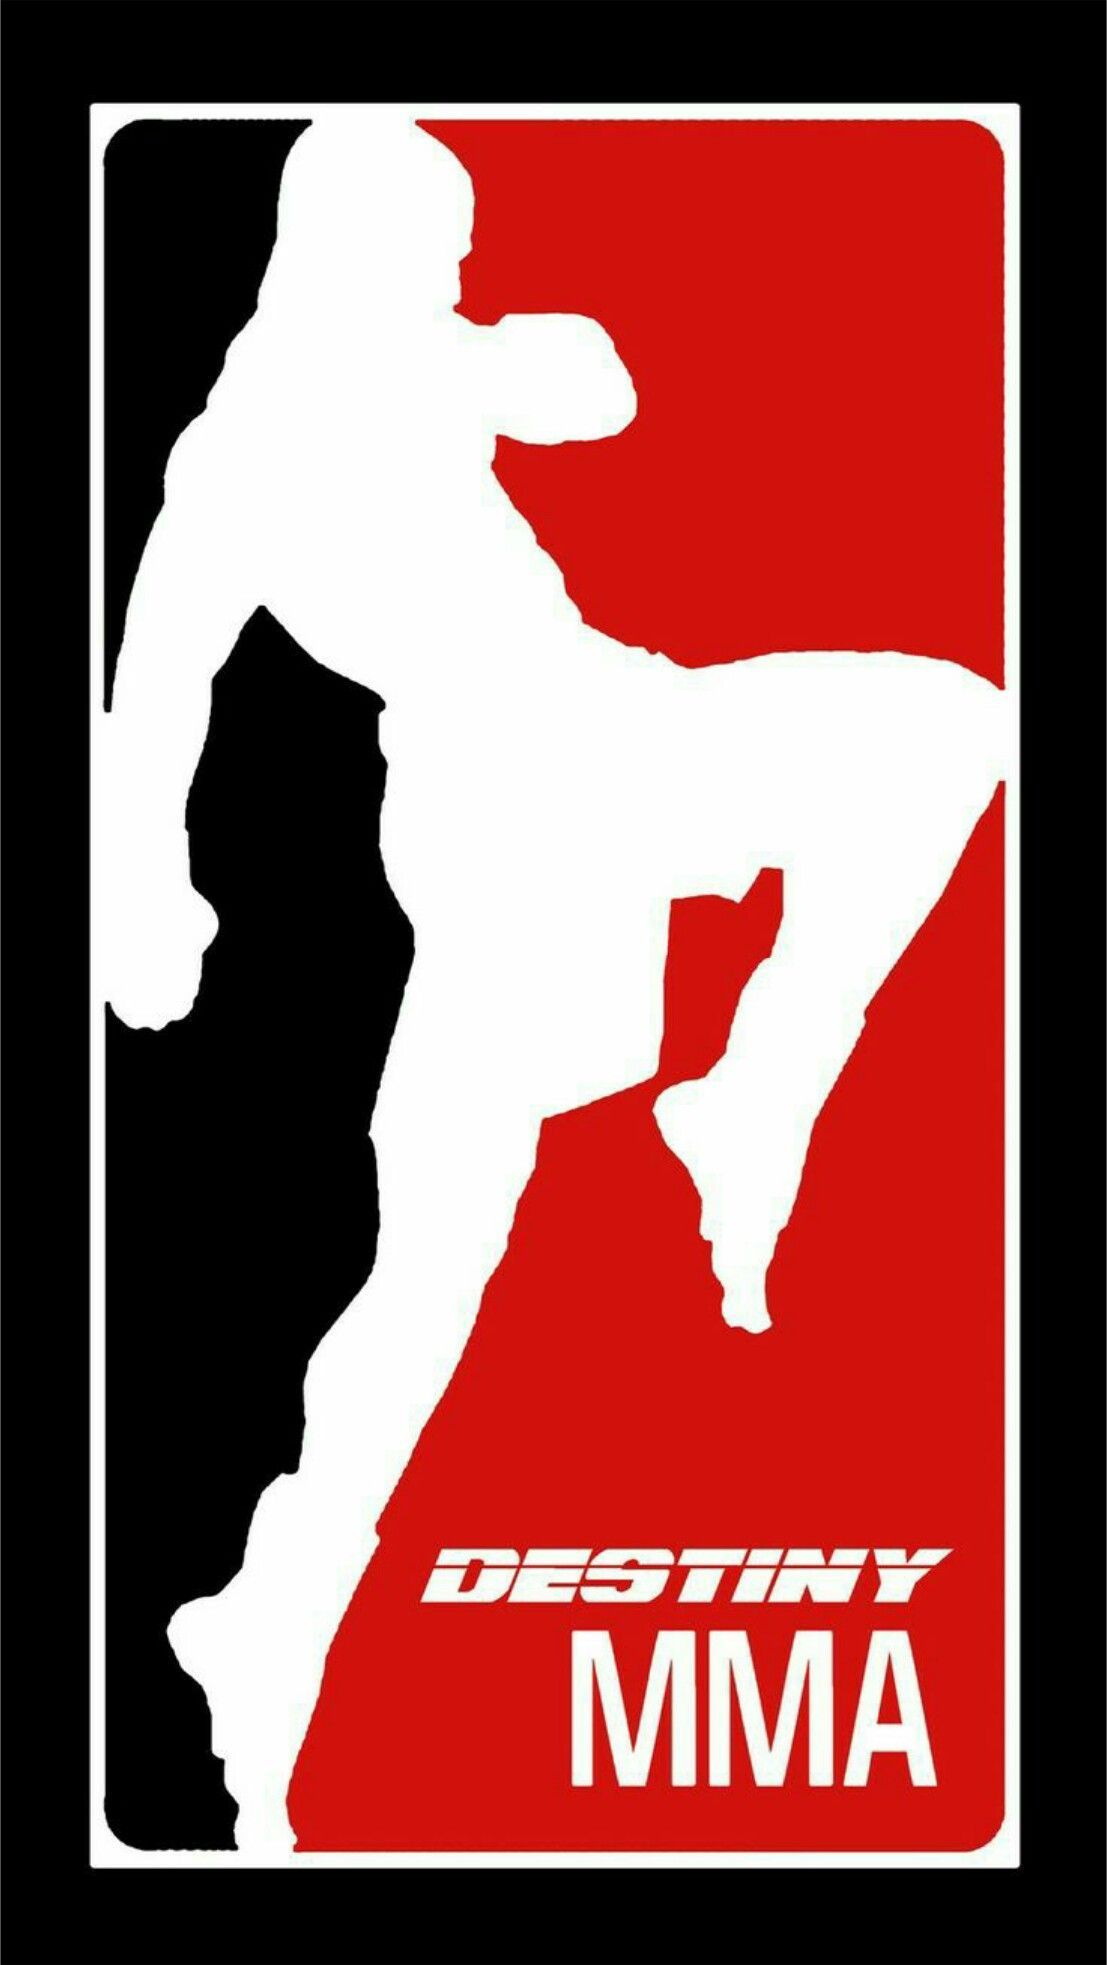 Mma iphone wallpapers top free mma iphone backgrounds wallpaperaccess - Free ufc wallpapers ...